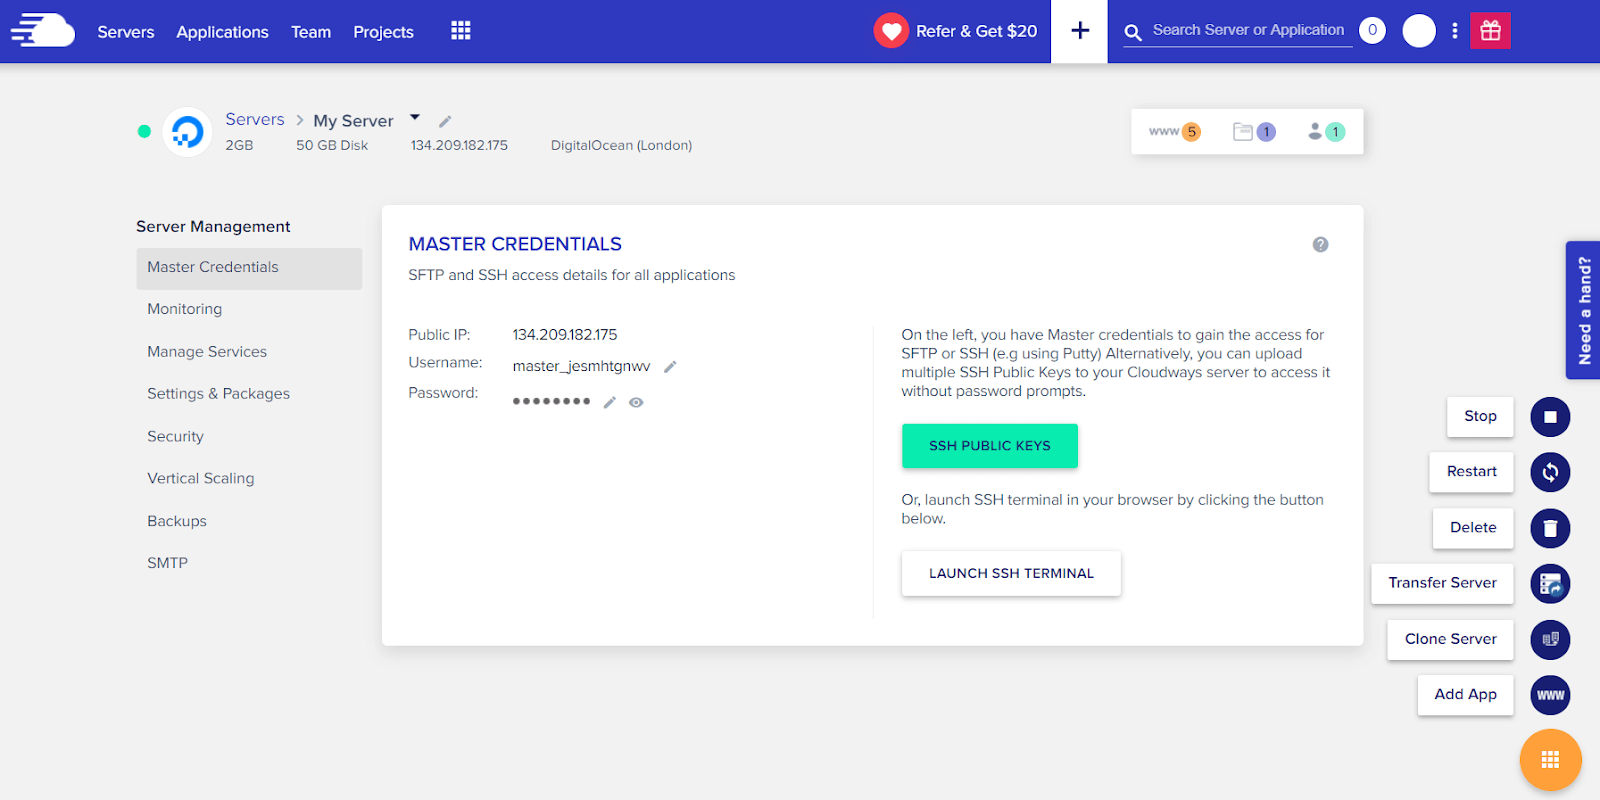 cloudways-server-management-woocommerc